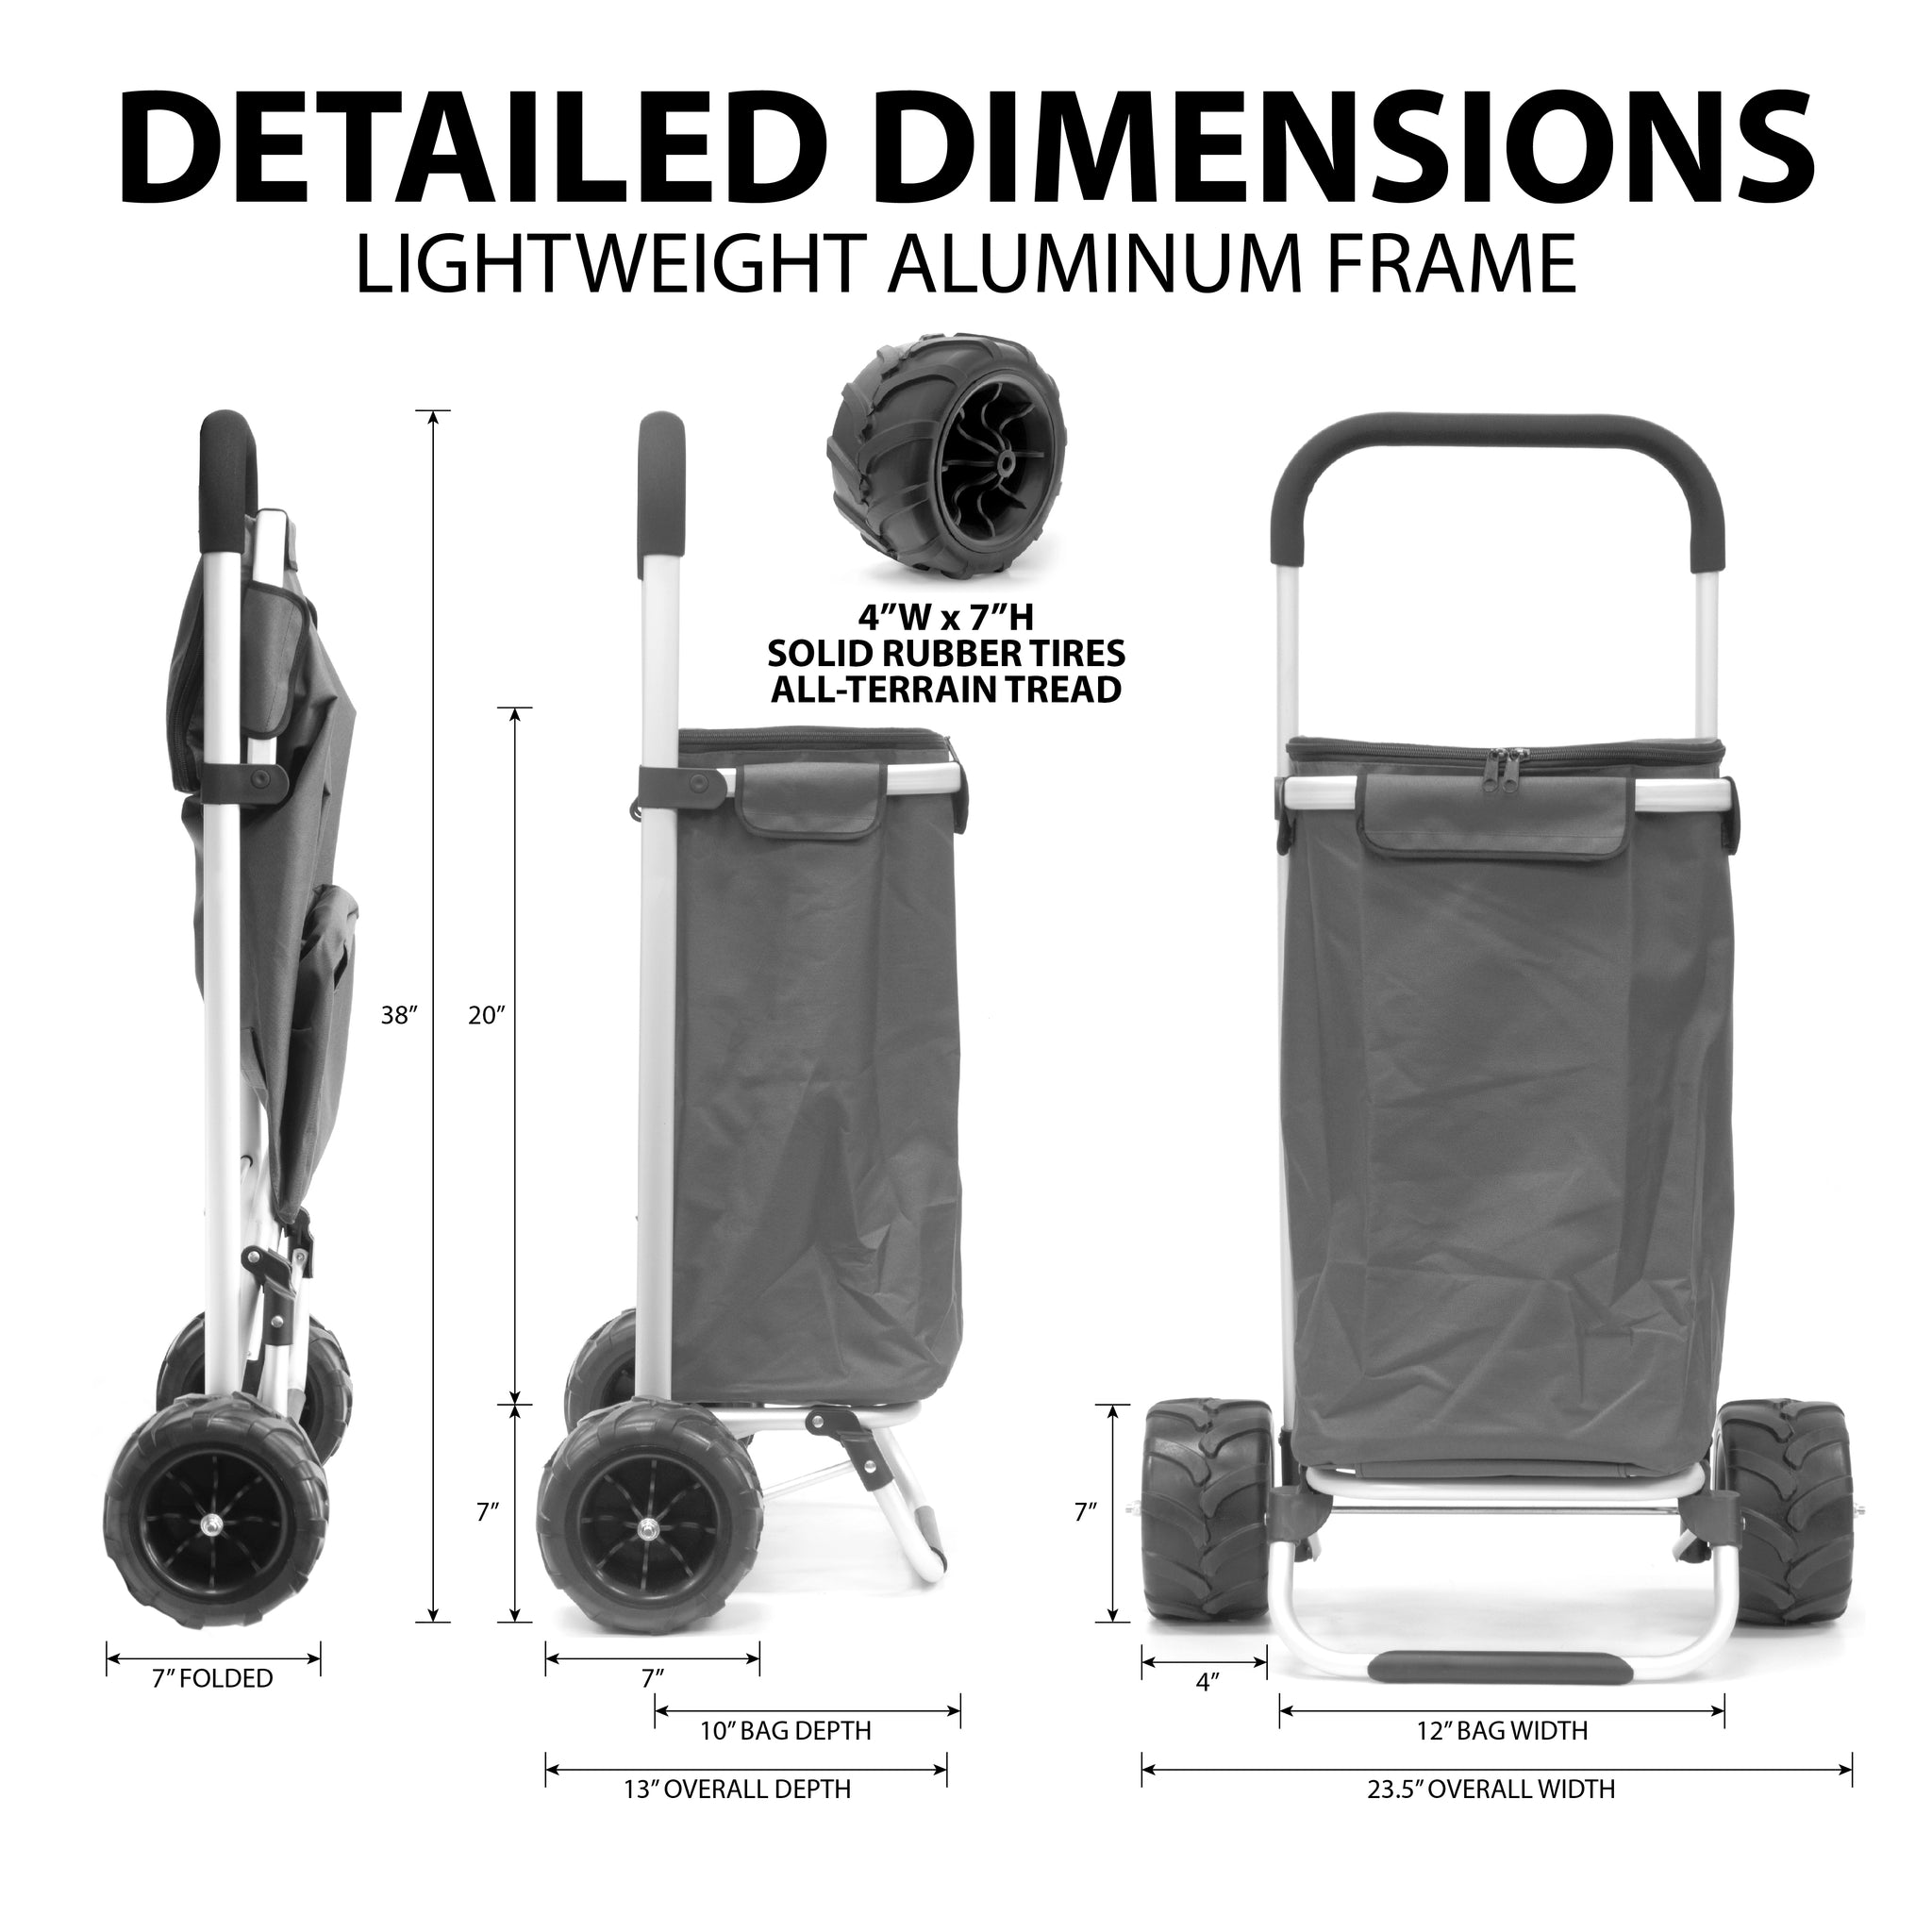 All-Terrain Folding Aluminum Trolley with Removable Zip-Top Bag Black Dimensions 890200